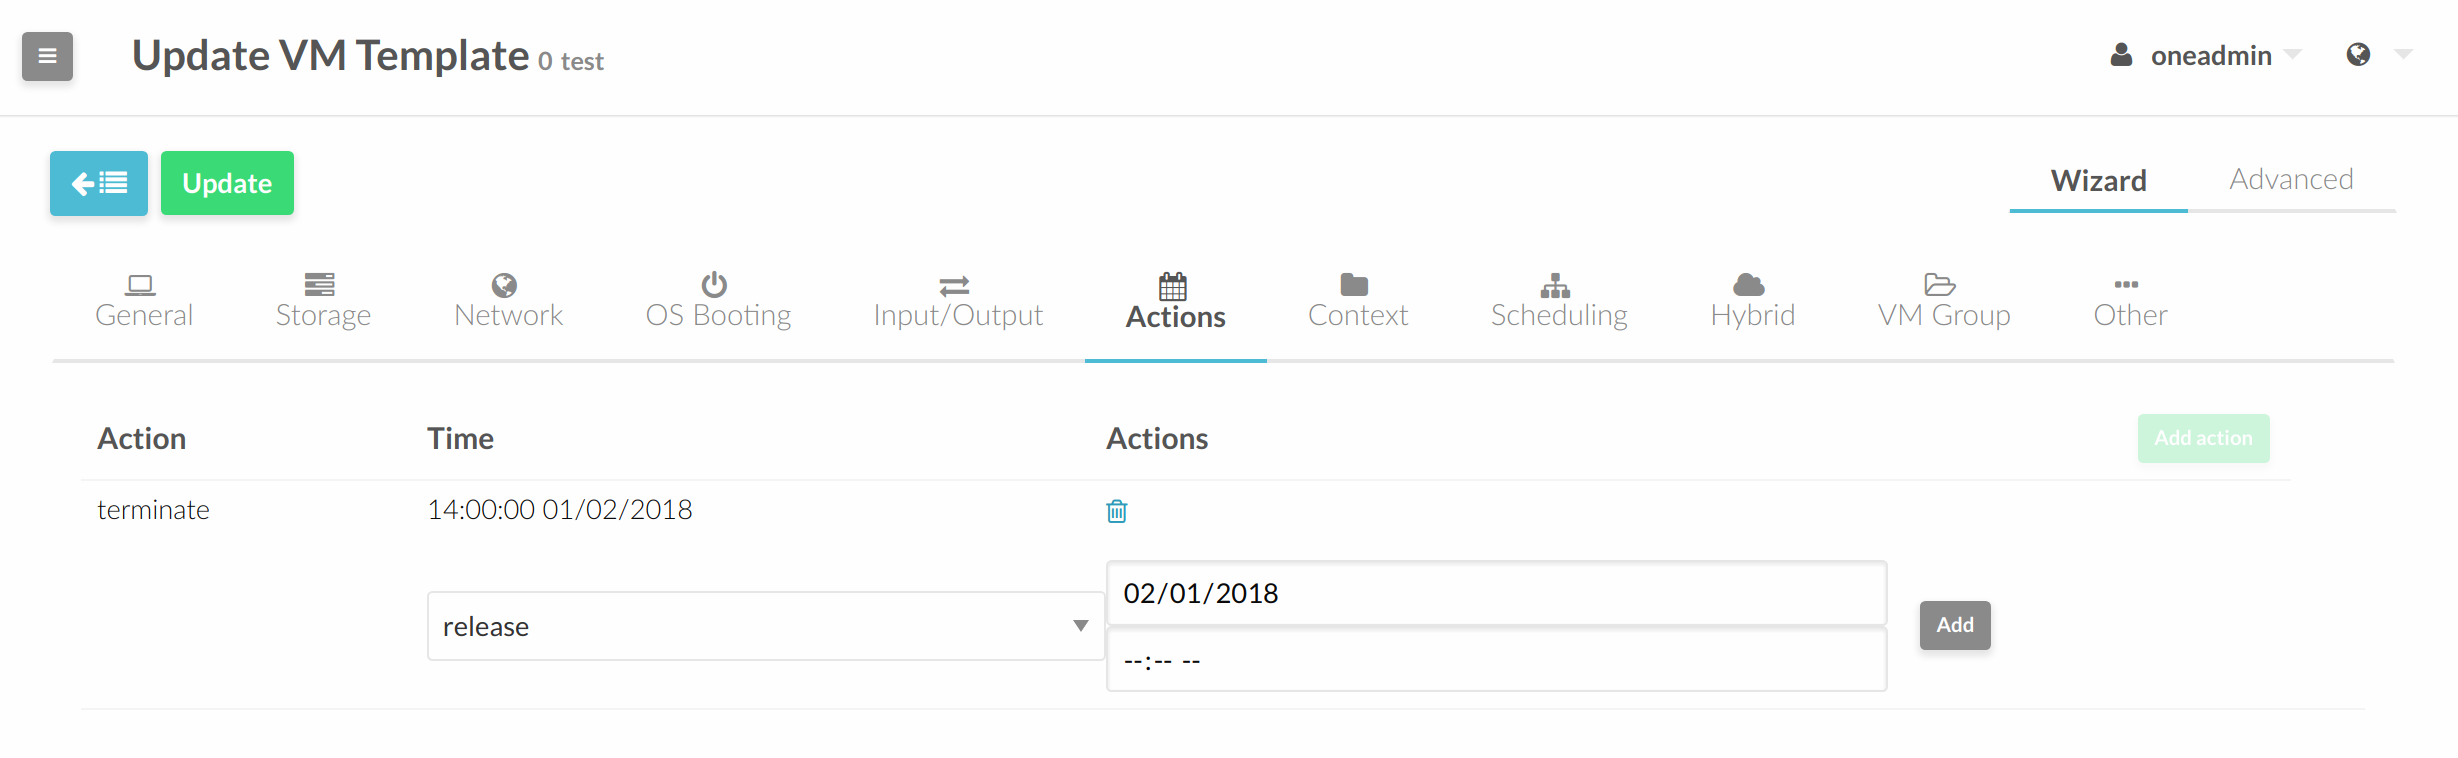 sched actions 5.6